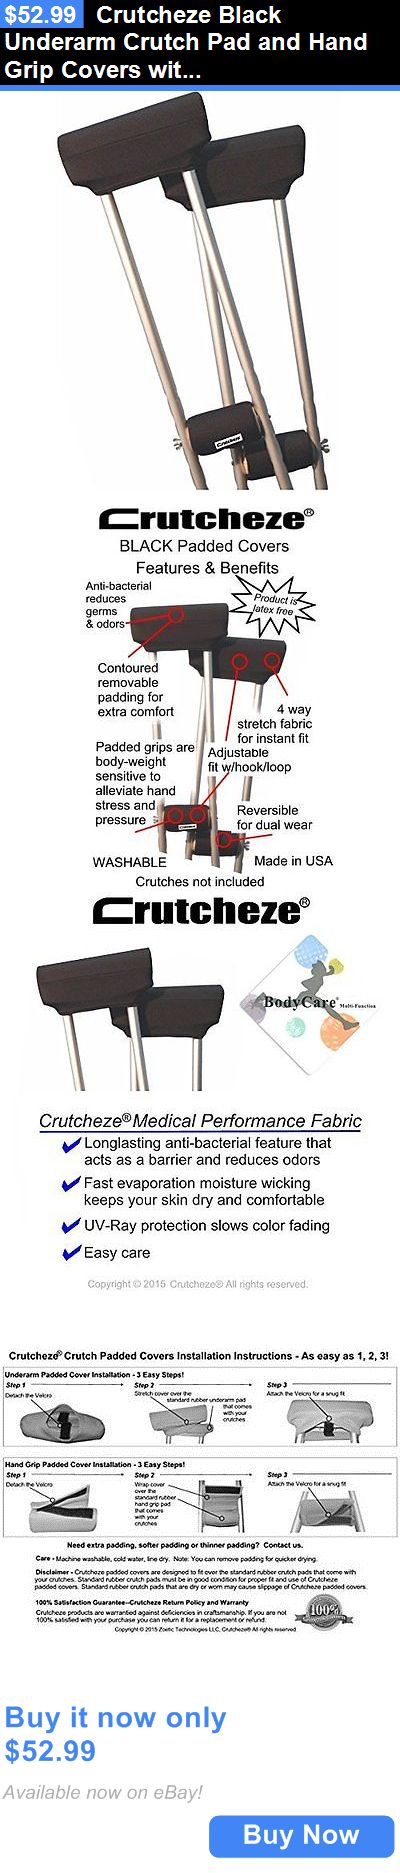 Crutches: Crutcheze Black Underarm Crutch Pad And Hand Grip Covers With Comfortable BUY IT NOW ONLY: $52.99